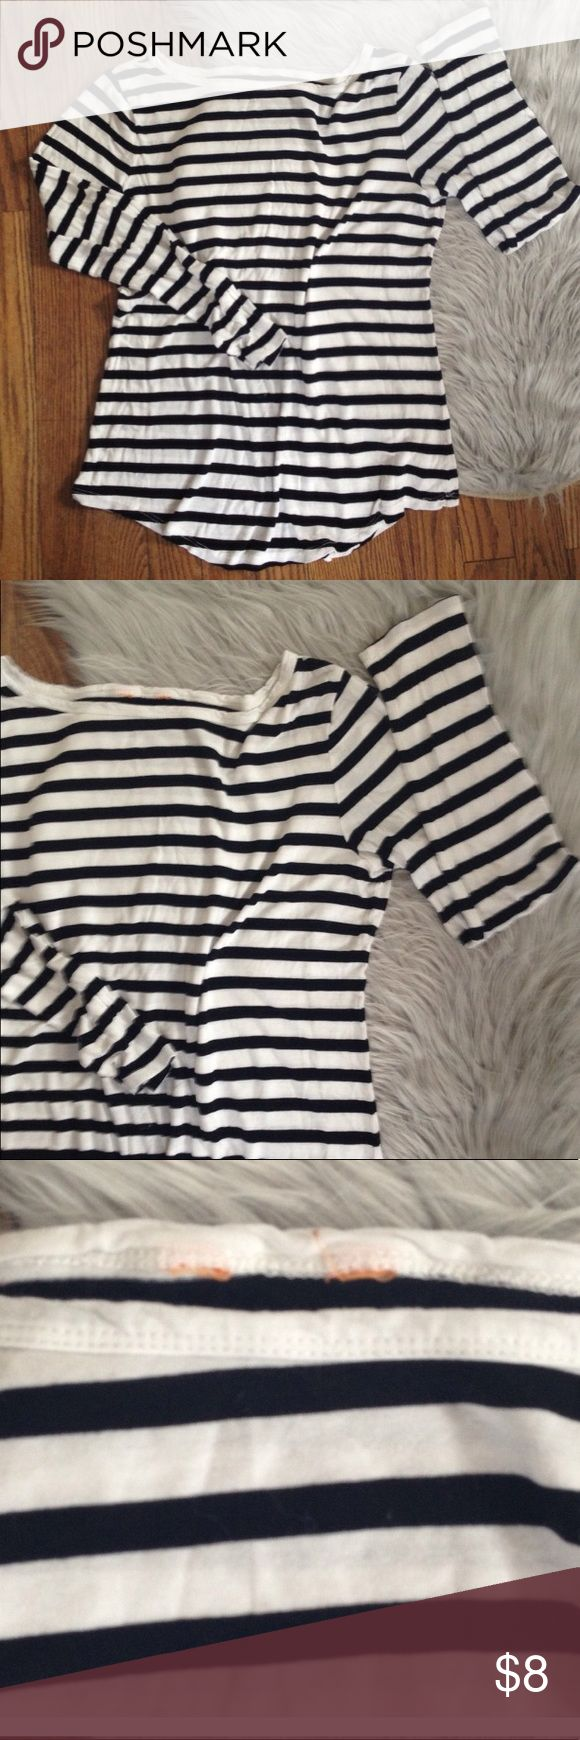 Joe Fresh long sleeve shirt top Medium Excellent used condition. Worn a handful of times (removed size tag because it was itchy). Basic long sleeve shirt. Color: black and white. Size: Medium. Brand: Joe Fresh. No trades. Free gift with any purchase & 15% off all bundles Joe Fresh Tops Tees - Long Sleeve